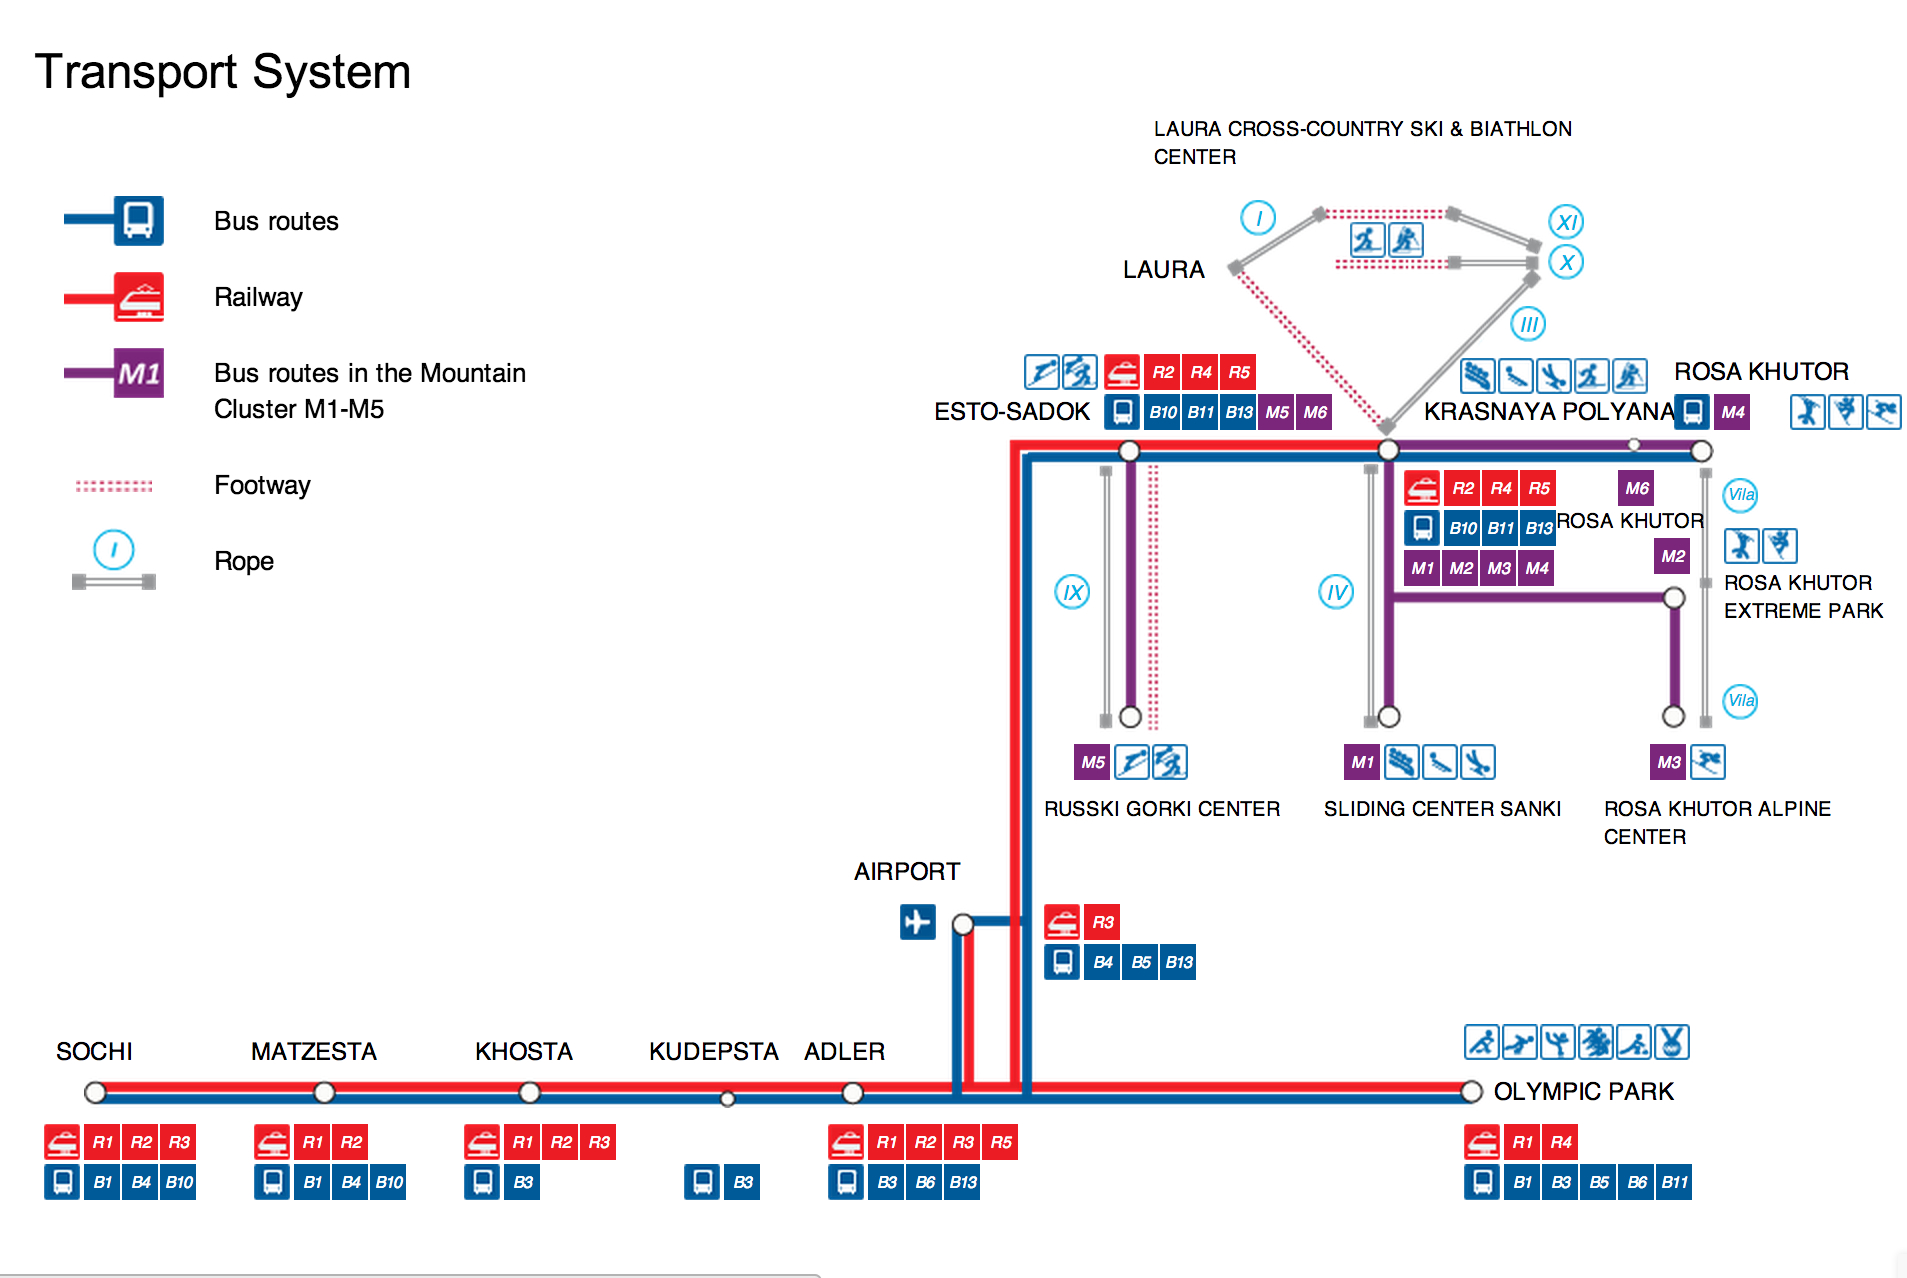 Most of the transit lines in the above map are new. Source: Sochi2014 website.